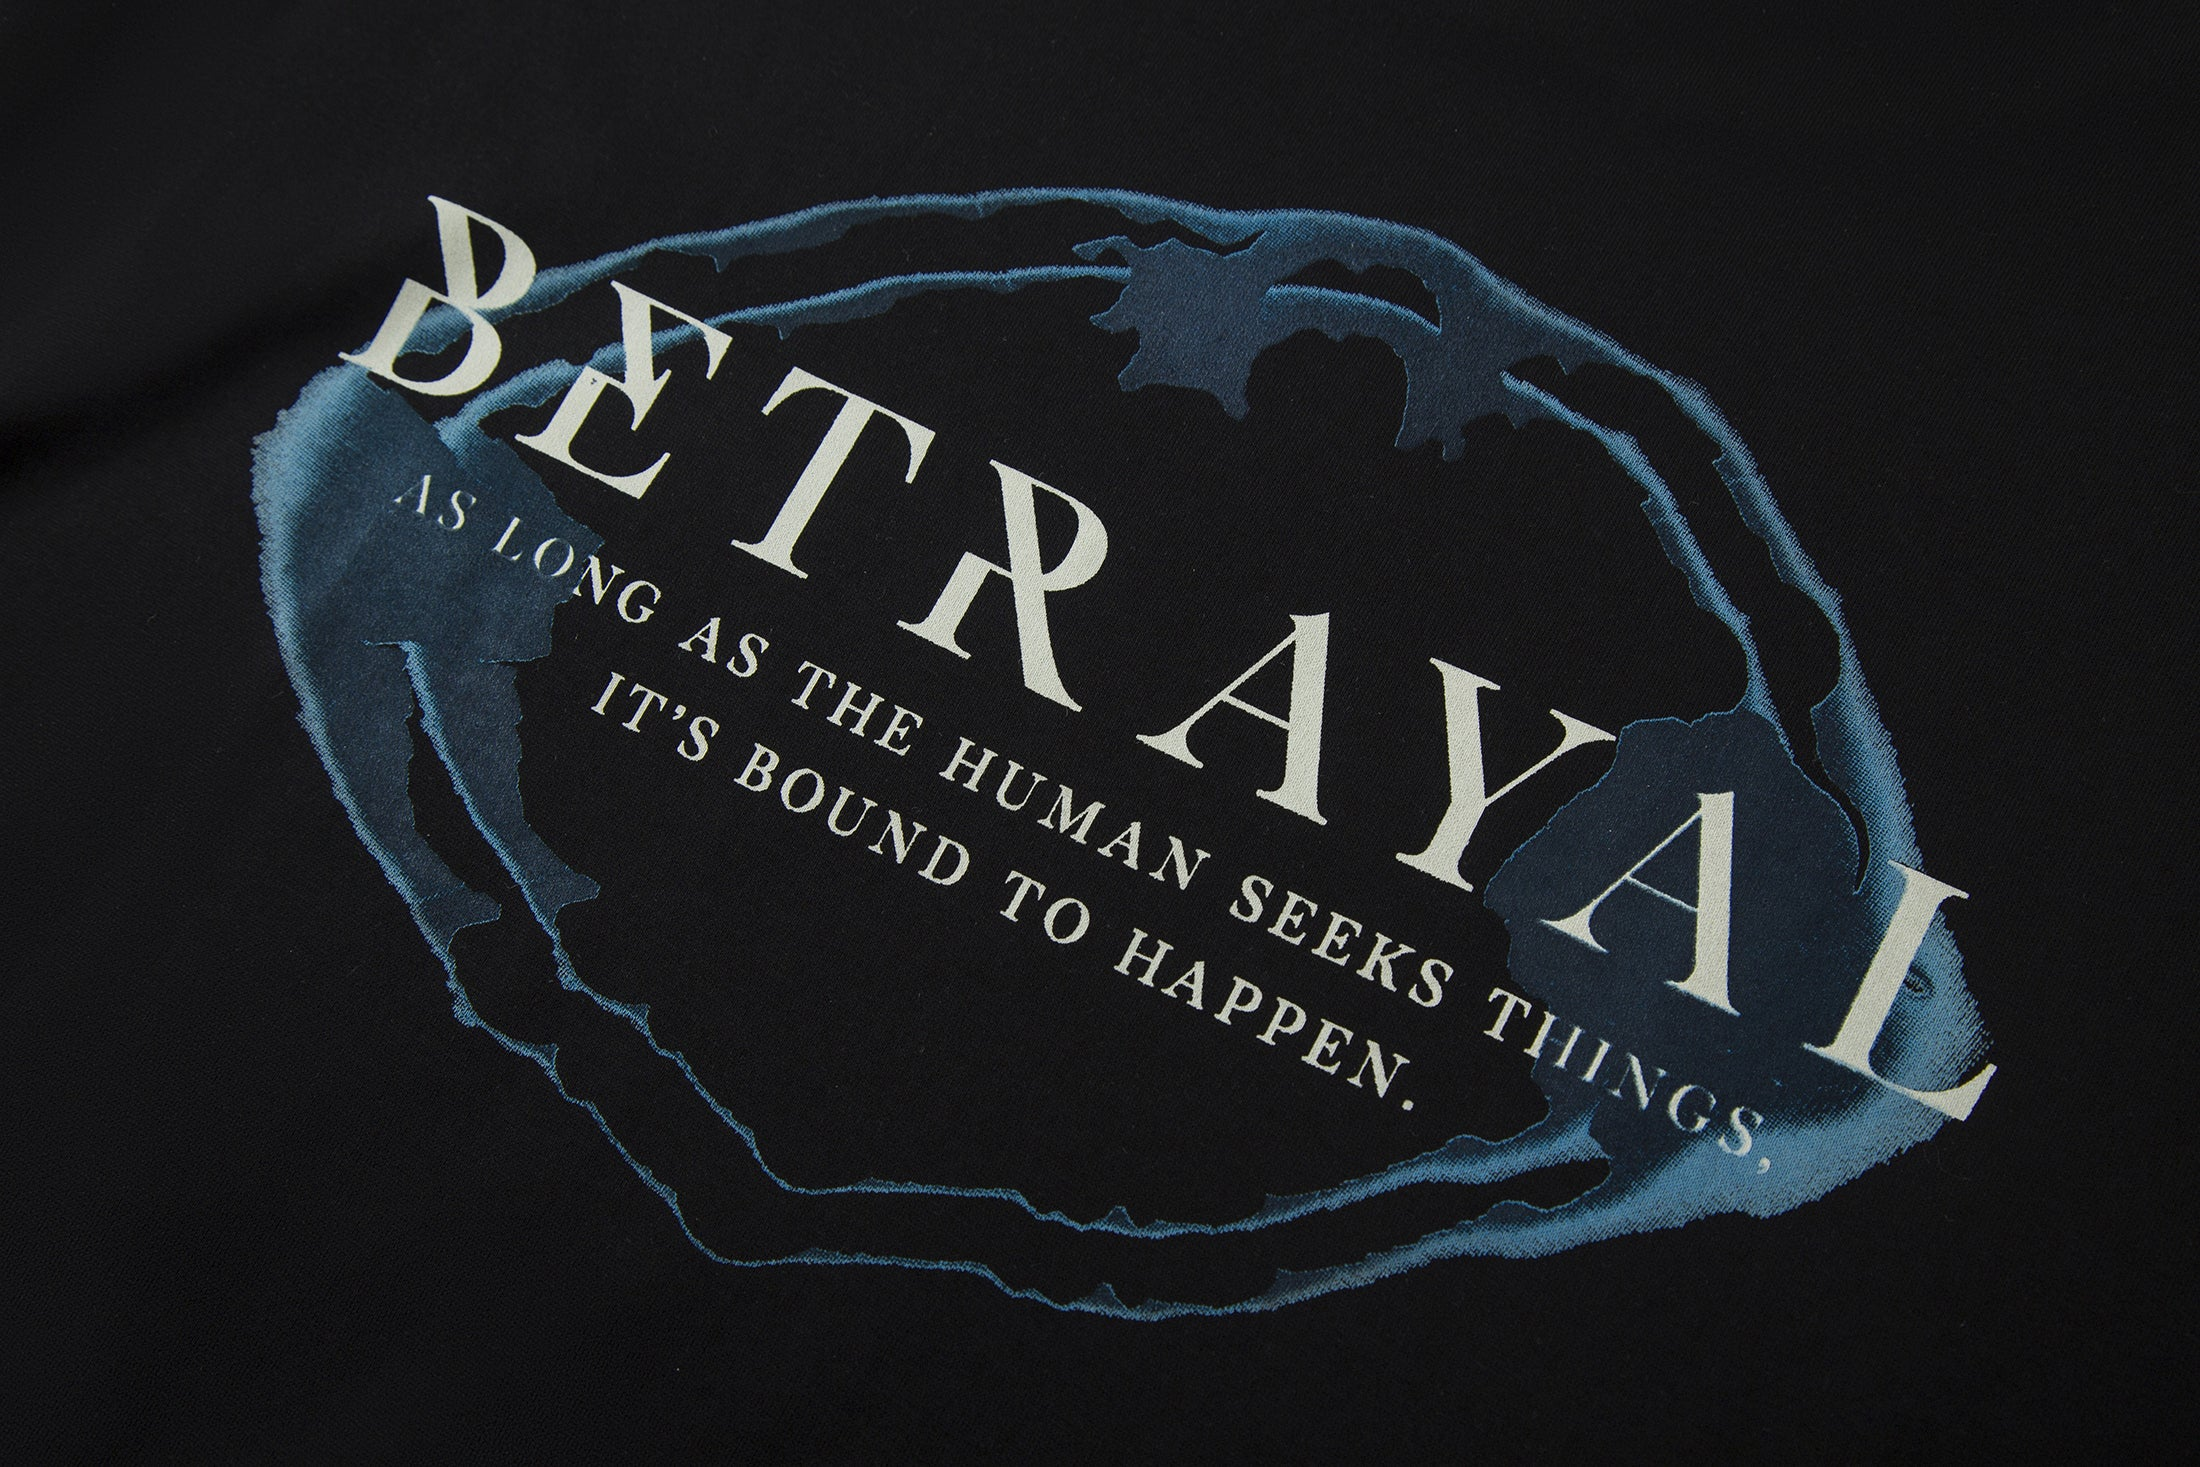 Load image into Gallery viewer, Le Fruit Defendu Betrayal T-shirt - Black